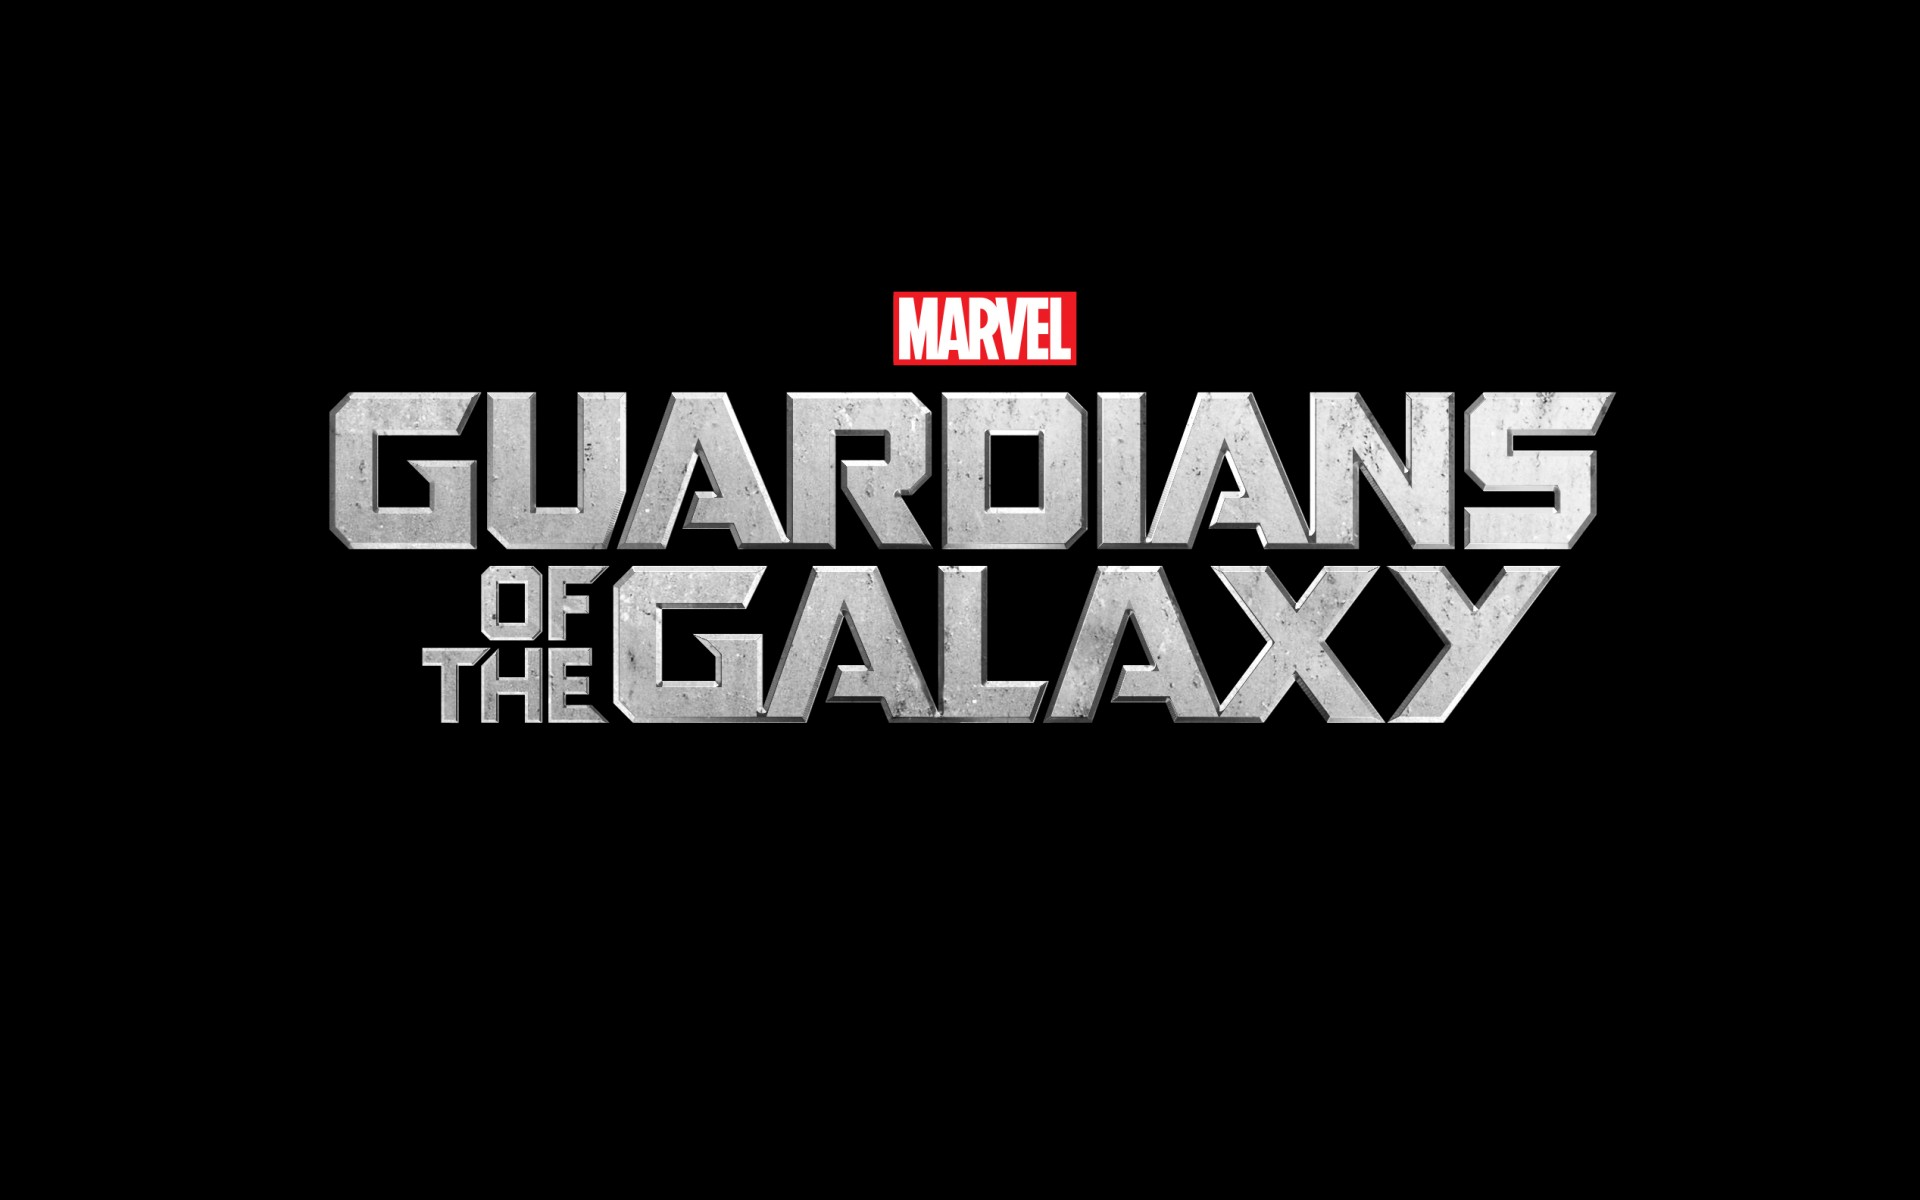 Guardians of the Galaxy wallpaper 8